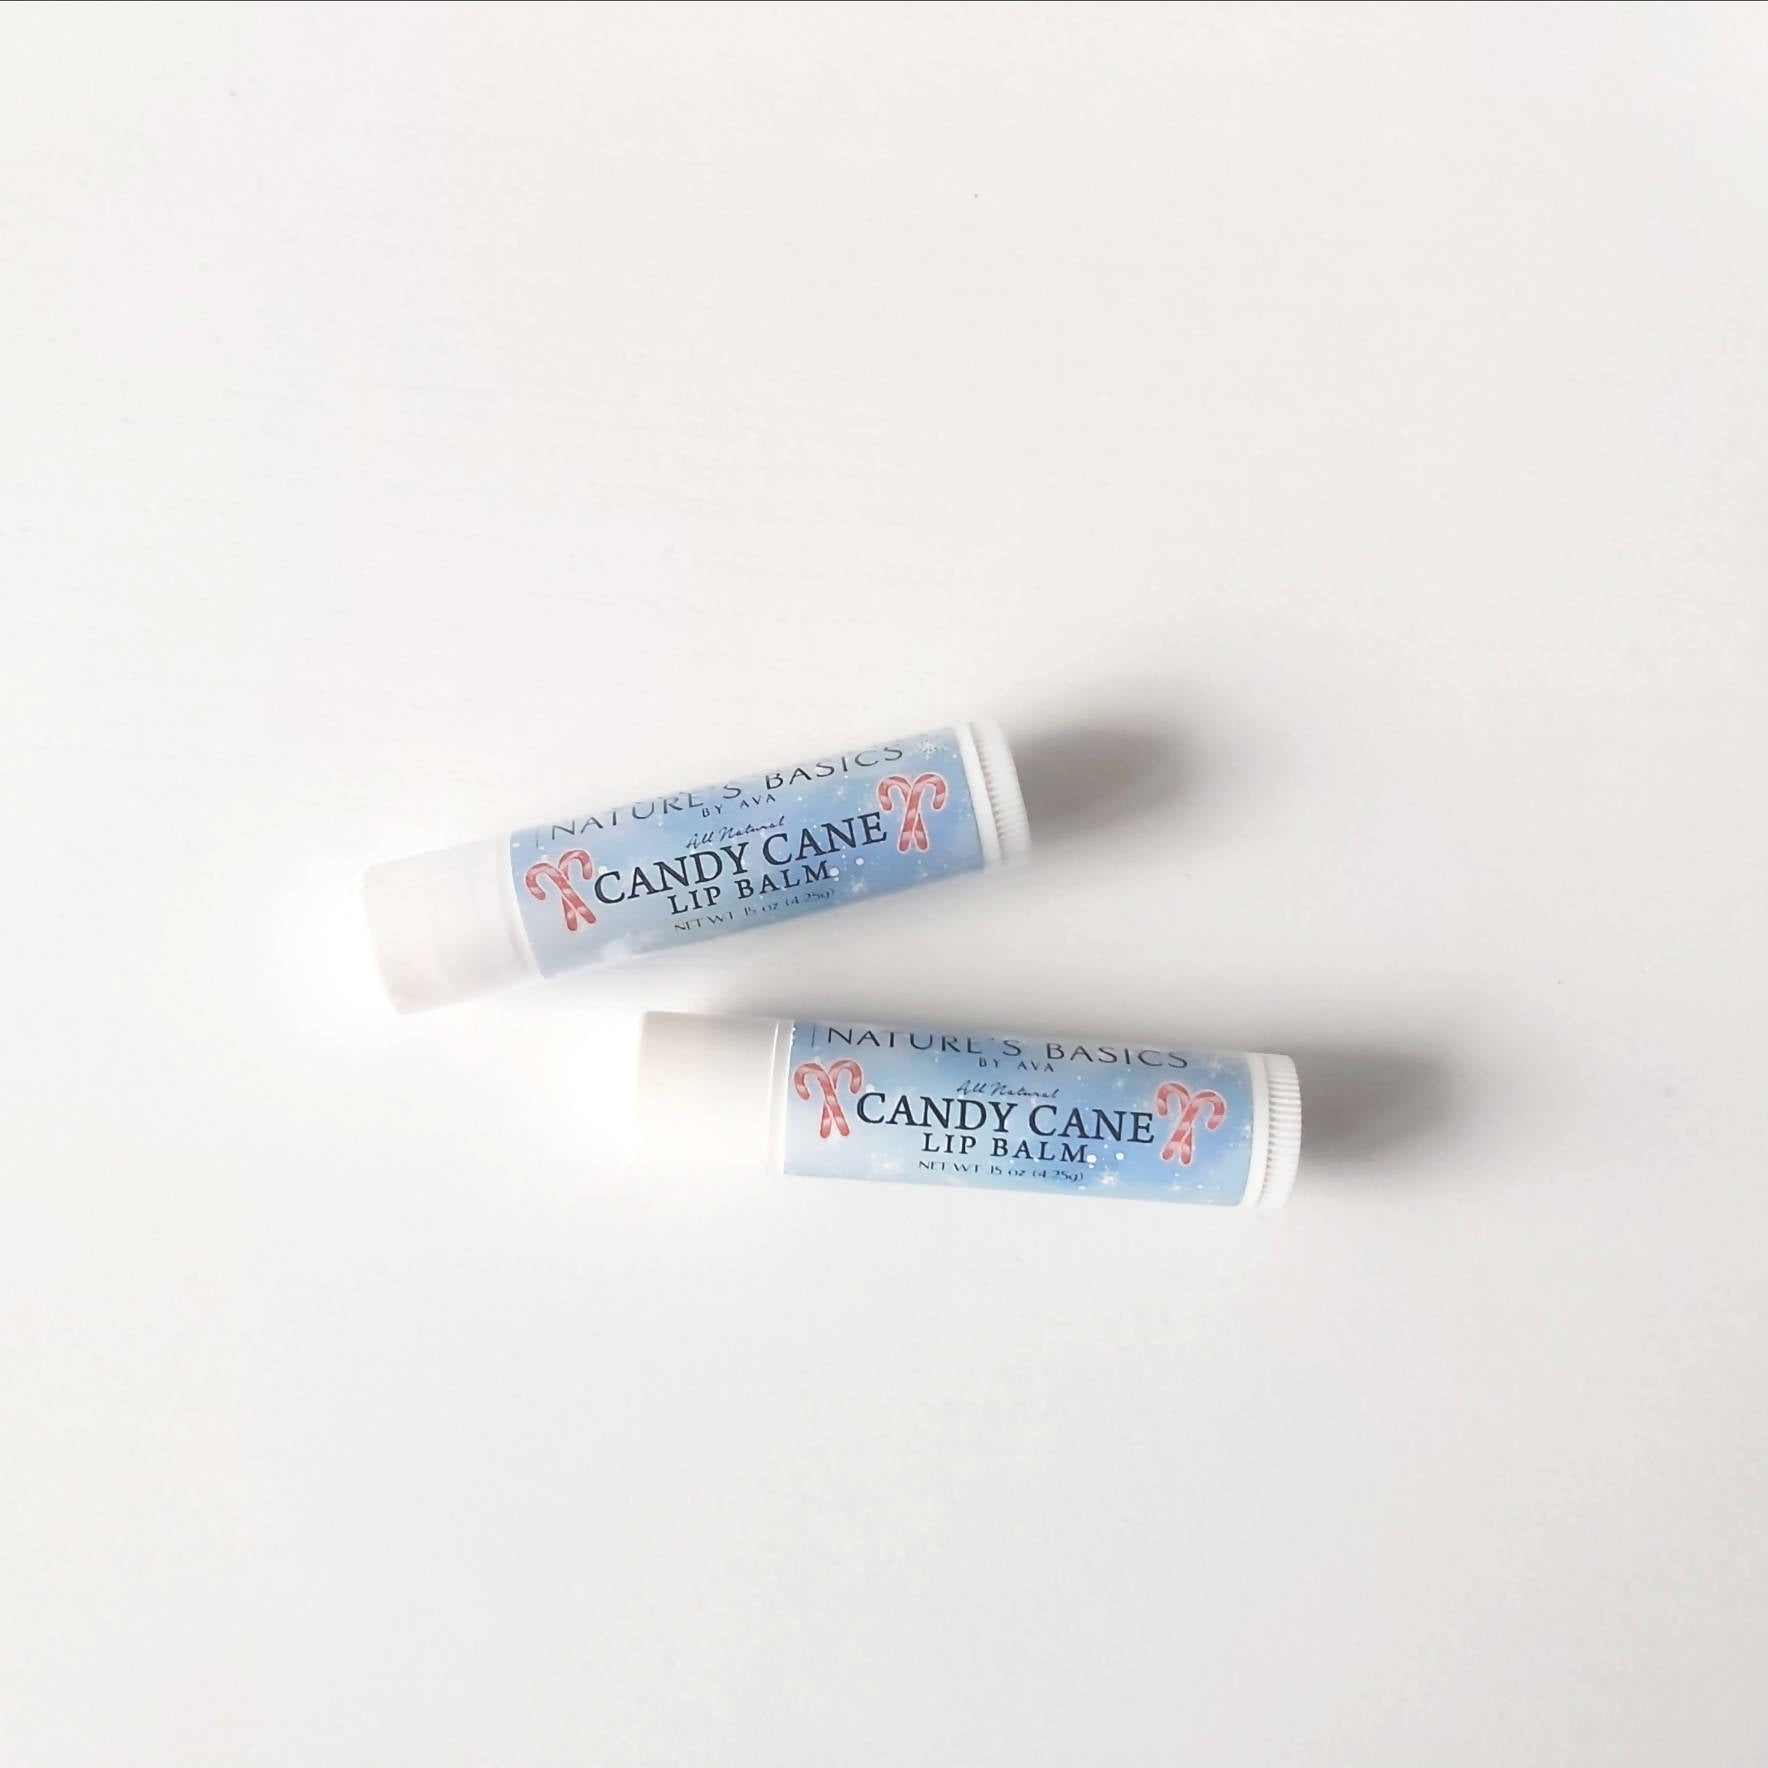 Candy Cane Limited Edition Winter Lip Balm